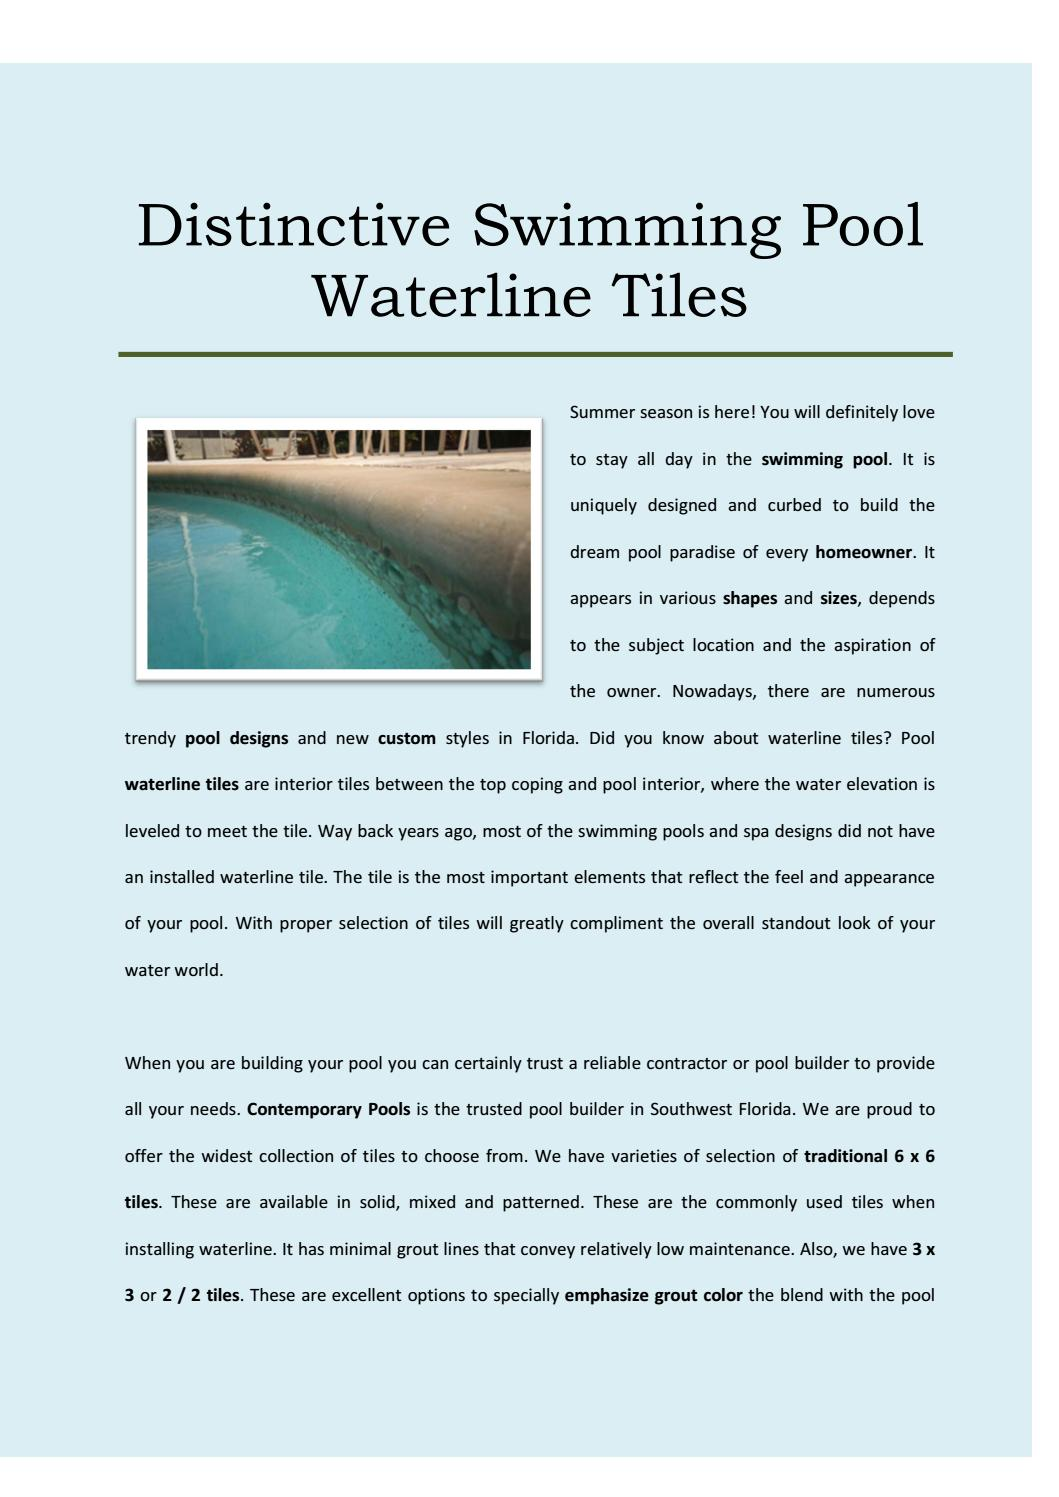 Distinctive swimming pool waterline tiles by Contemporary ...